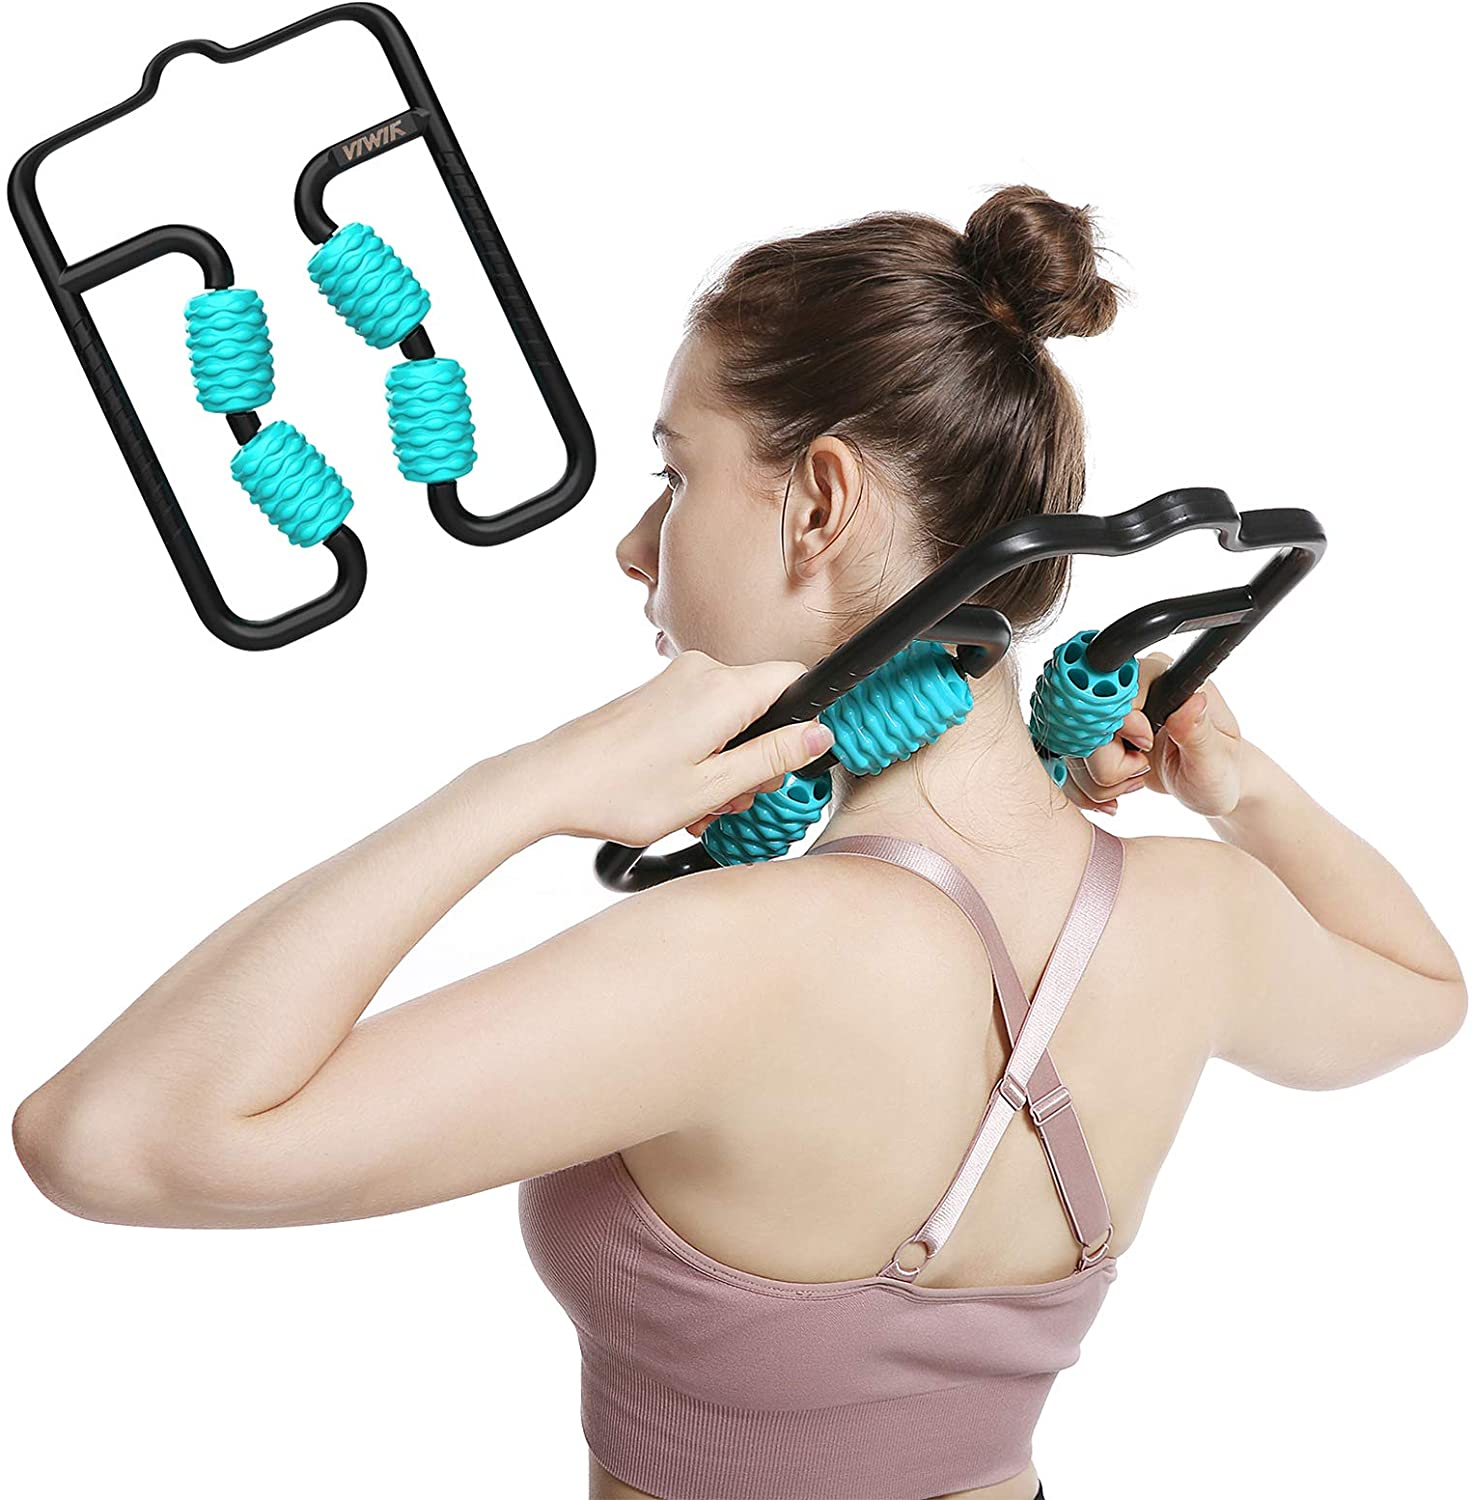 Innovative High Tech Trigger Point Roller Massager Stick- Hand Arm and Leg Massager for Sore Muscle, Maximum Tension Relief ∣ High Density Foam for Deep Tissue Pain Relief